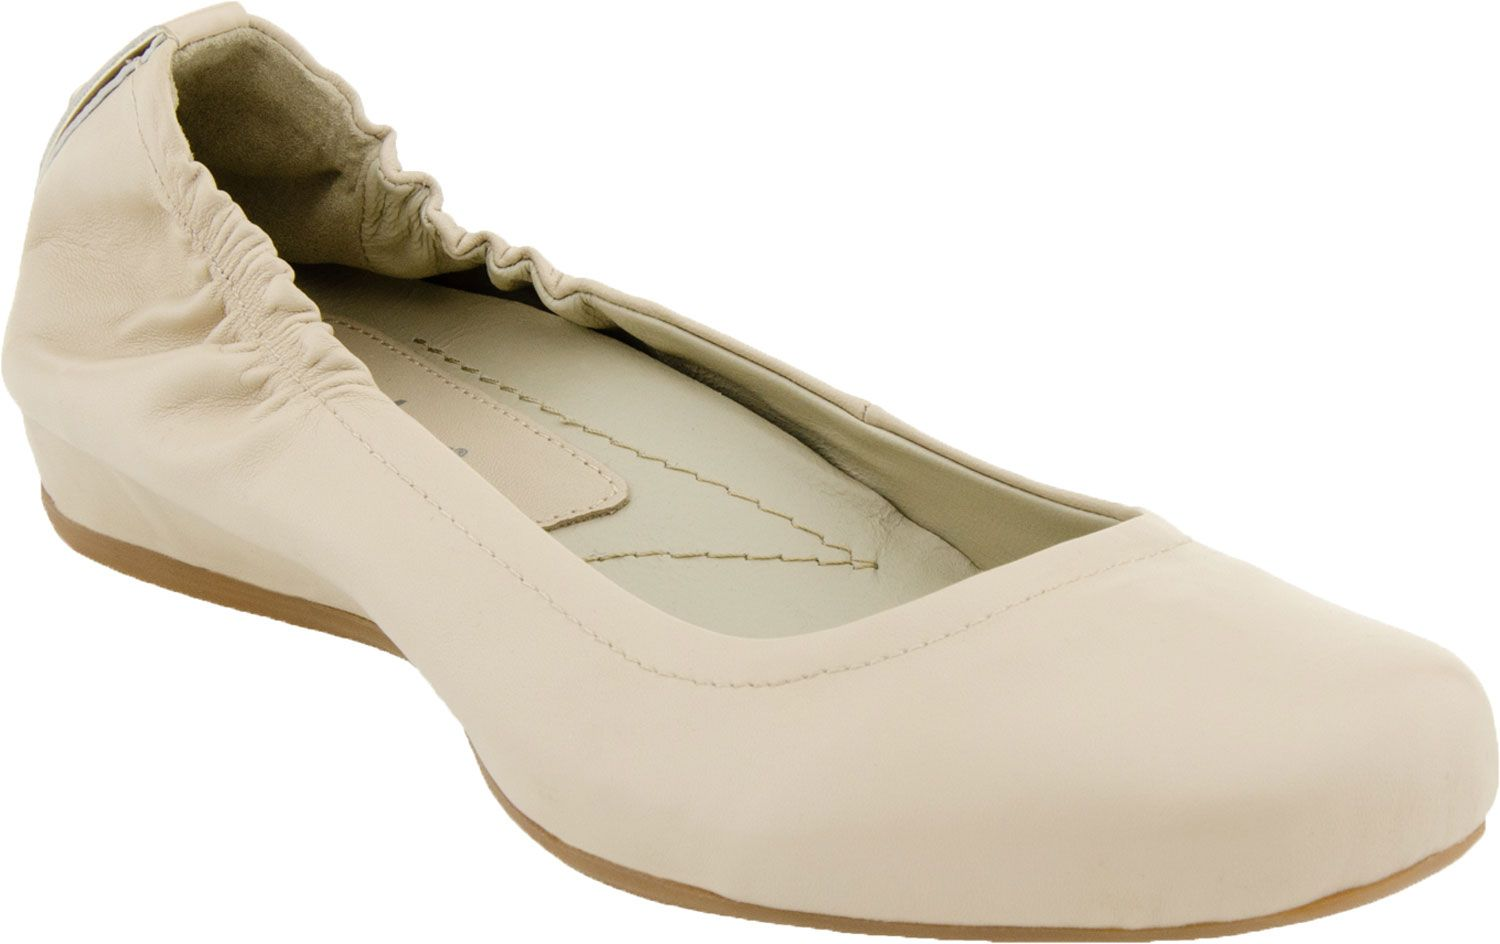 The Earthies Tolo is an unforgettable ballet flat. It's